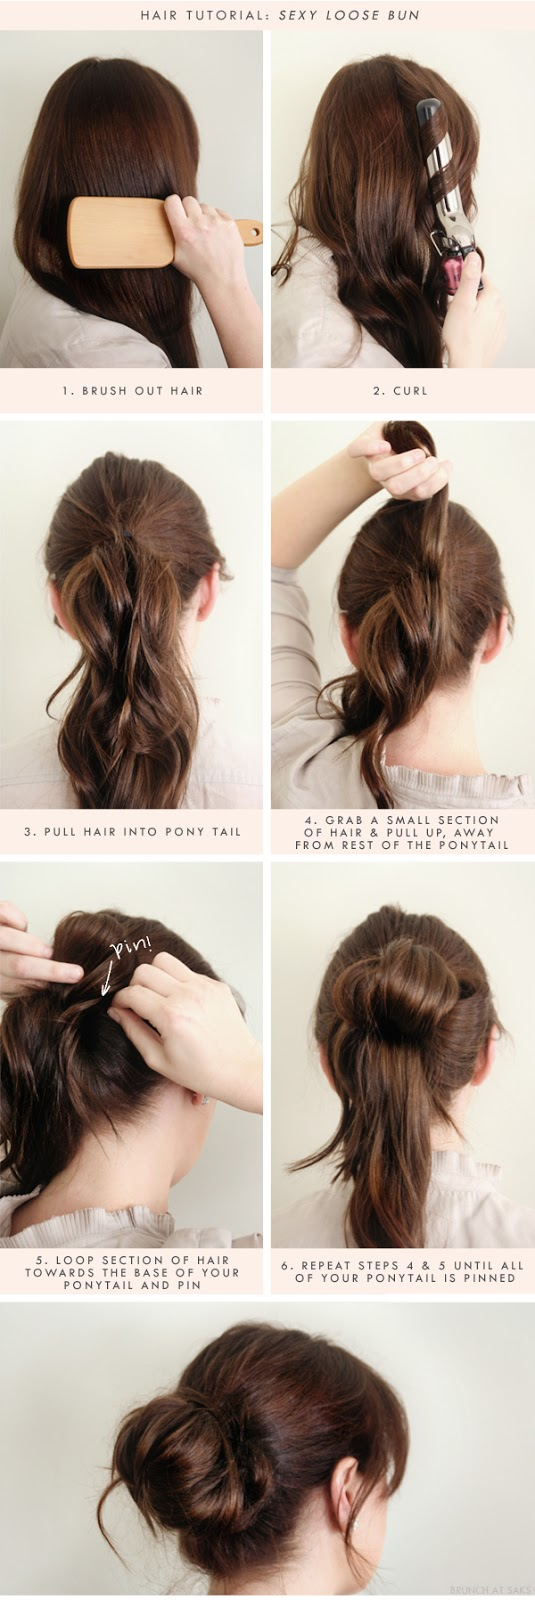 Enjoyable Top 25 Messy Hair Bun Tutorials Perfect For Those Lazy Mornings Short Hairstyles Gunalazisus